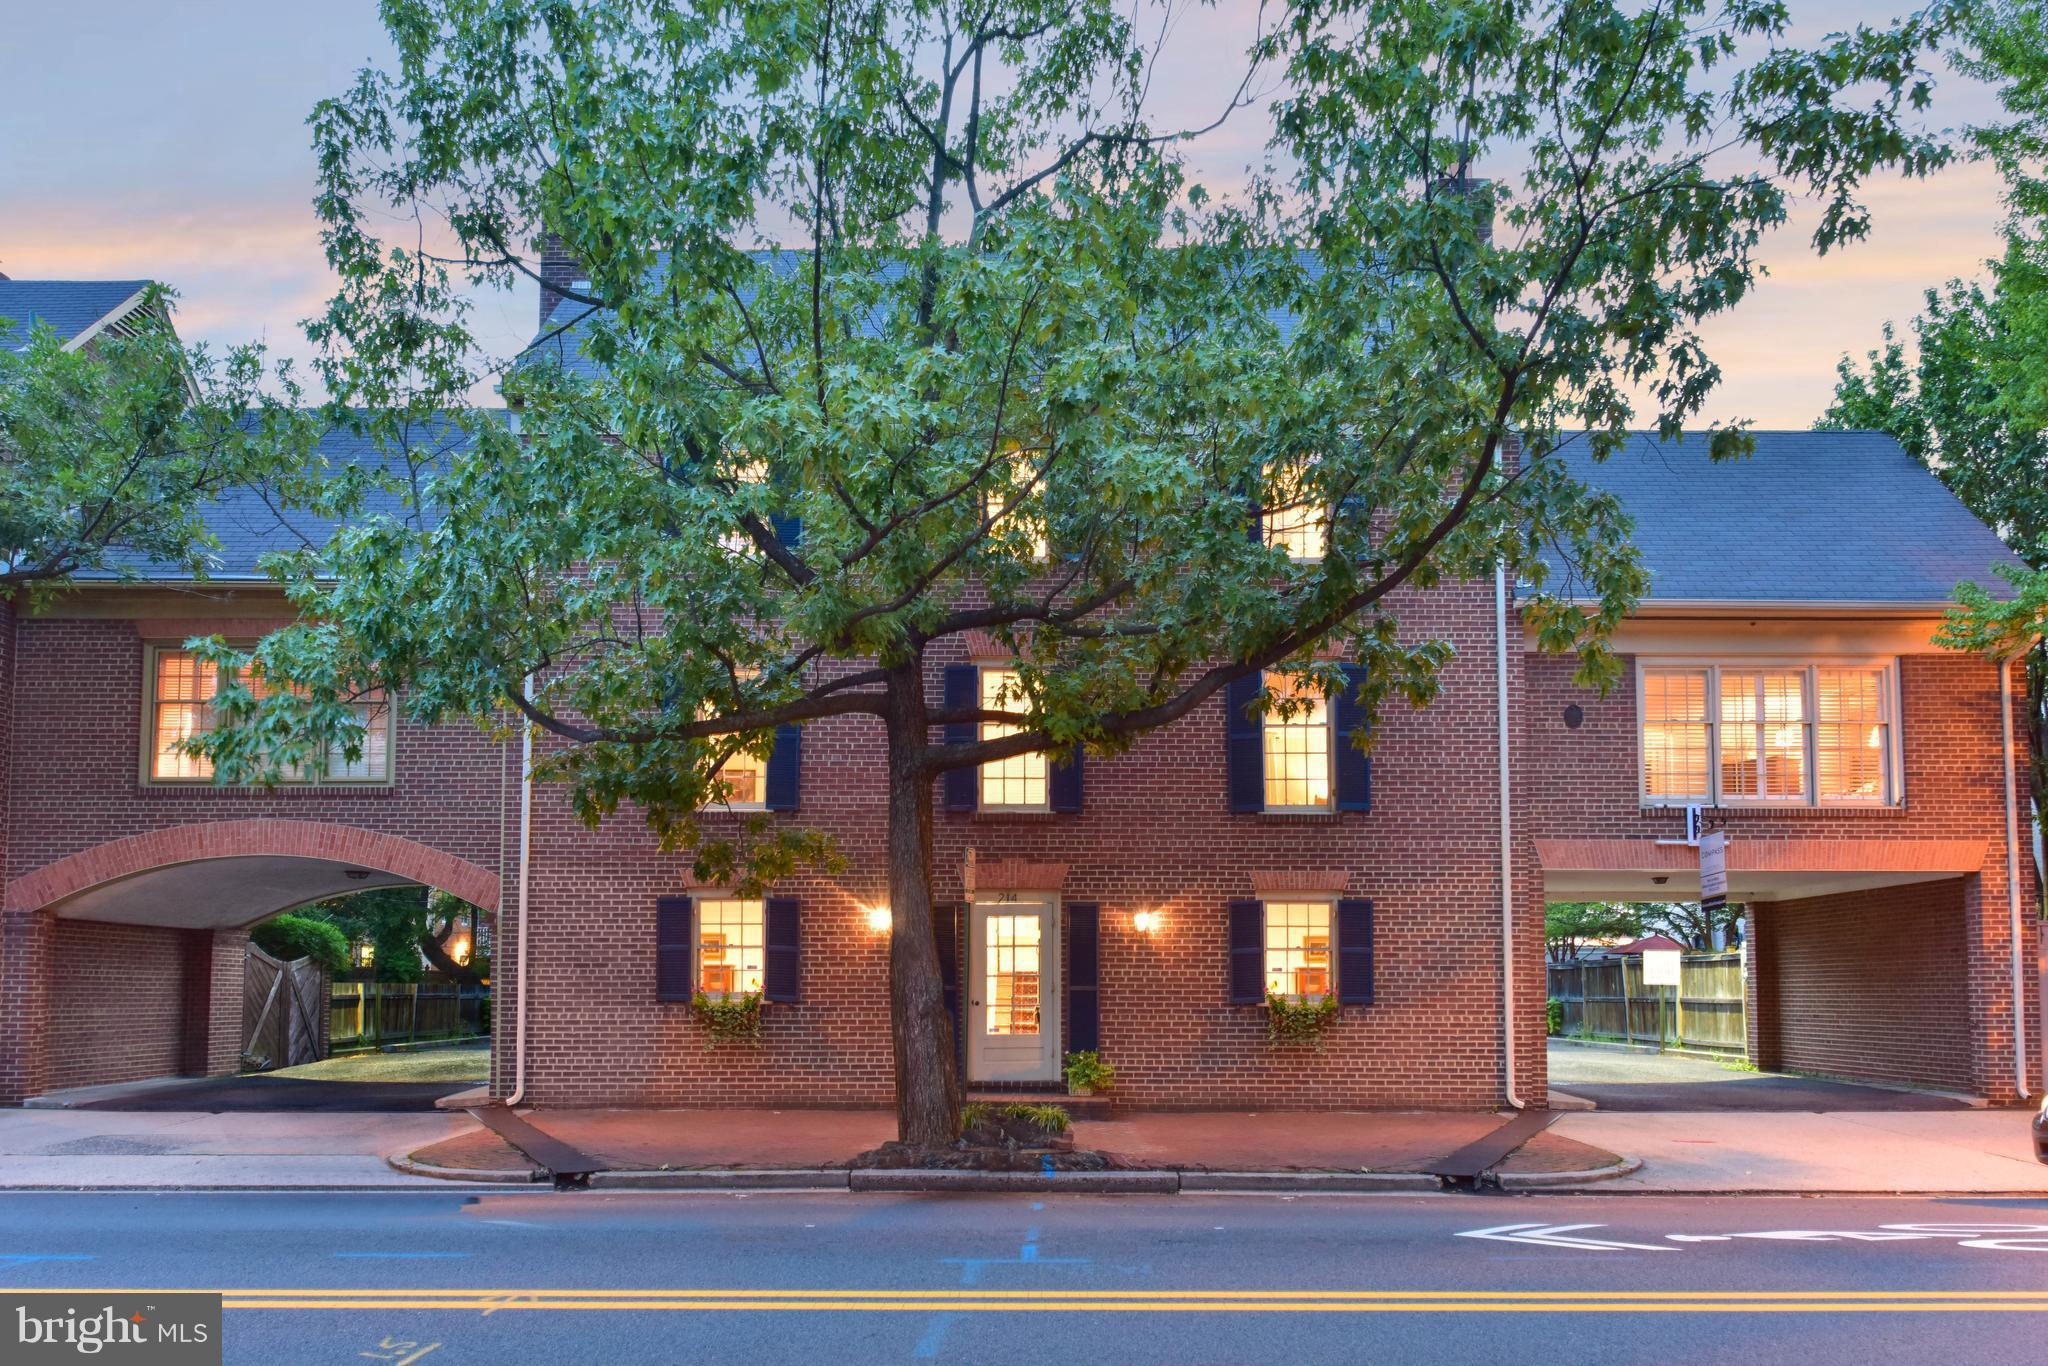 BEST DEAL IN OLD TOWN!!! Location, lifestyle & convenience- 3 lvl TH w/beautiful details throughout & historic vibes while offering modern comforts. Neutral paint, crown molding, HWF, 4 WBFPs, lots of natural light, wet bar in FR, BR lvl lndry. Ample storage. 3 MBR's ALL w/BAs+main MBR w/WIC. Private patio for relaxing. 1 assigned parking spot+other options too. 1 blk to King & close to 2 metros.